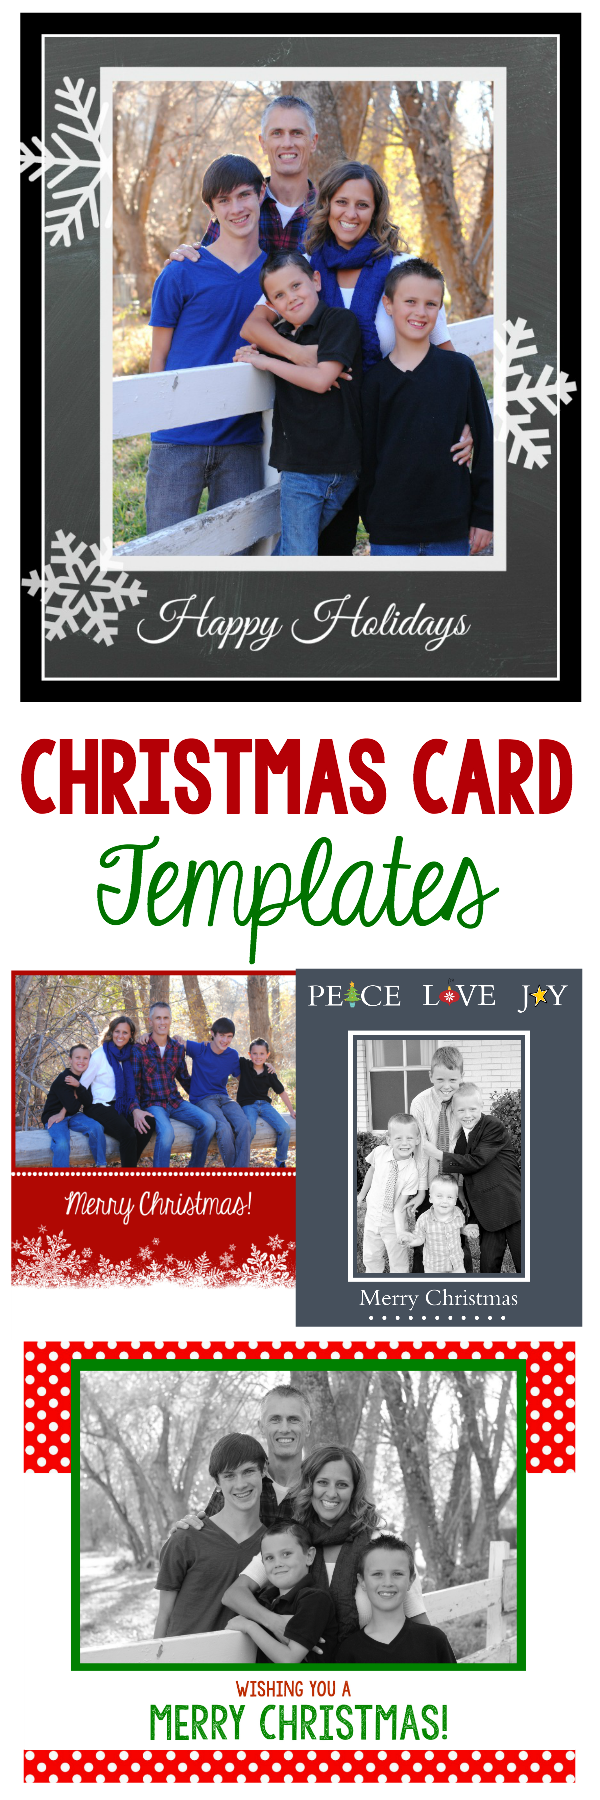 Free Christmas Card Templates.Free Christmas Card Templates Crazy Little Projects